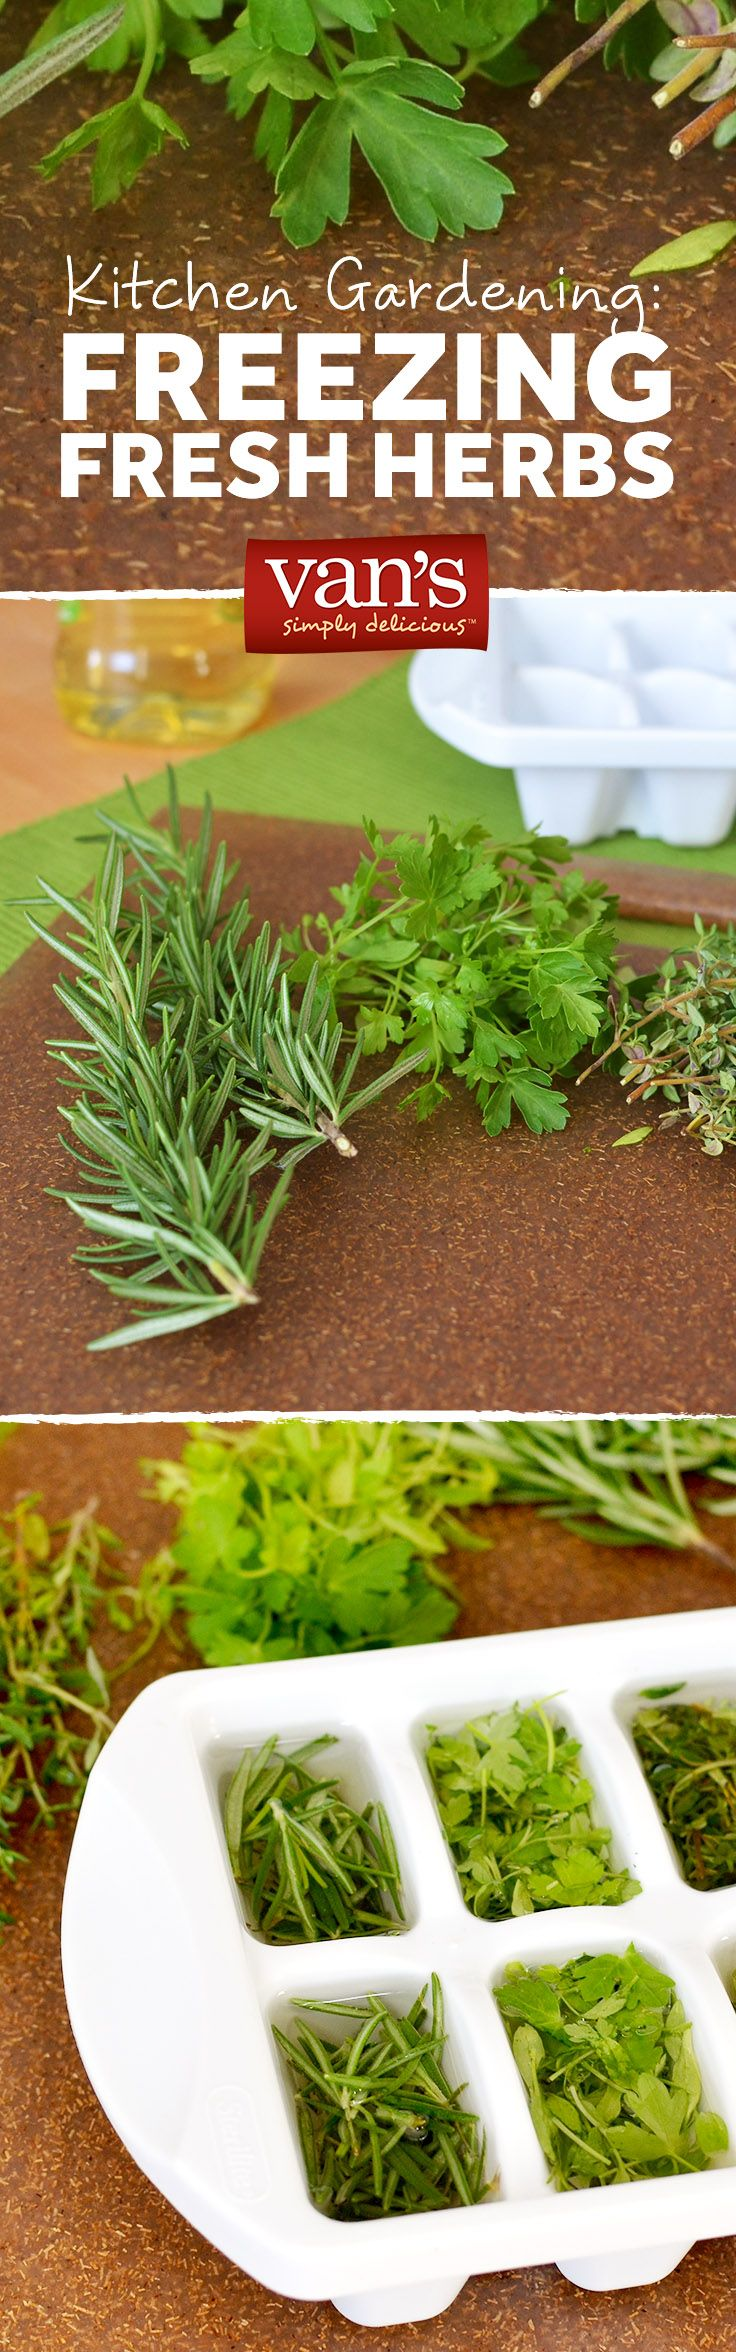 Kitchen Gardening: Looking for a long-term fix for fresh herbs? Freeze them into olive oil cubes for later use!